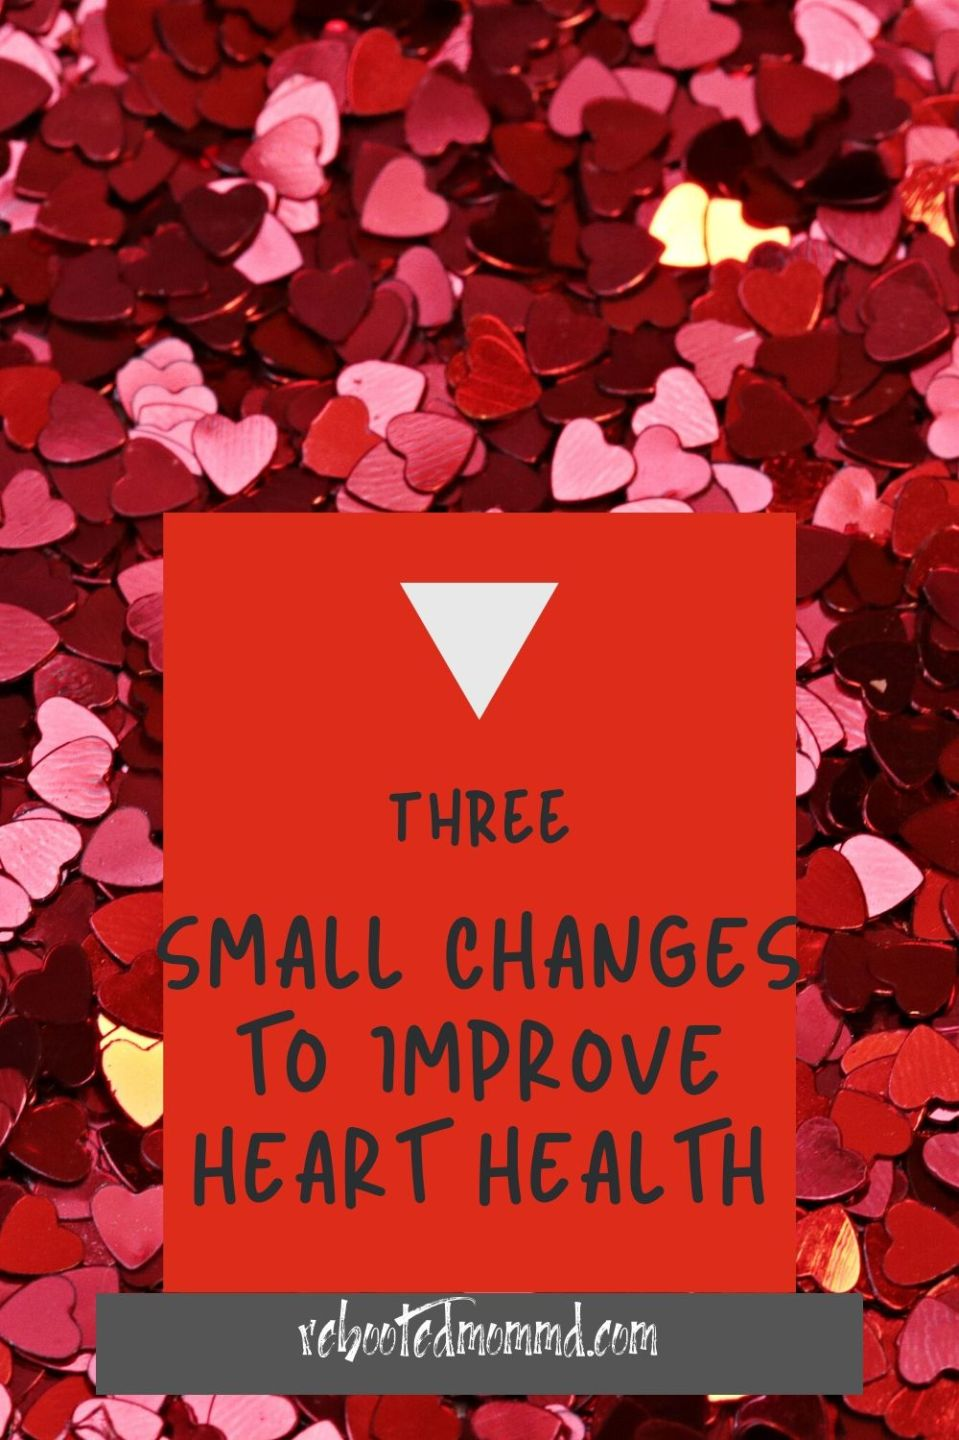 Small Changes to Improve Heart Health